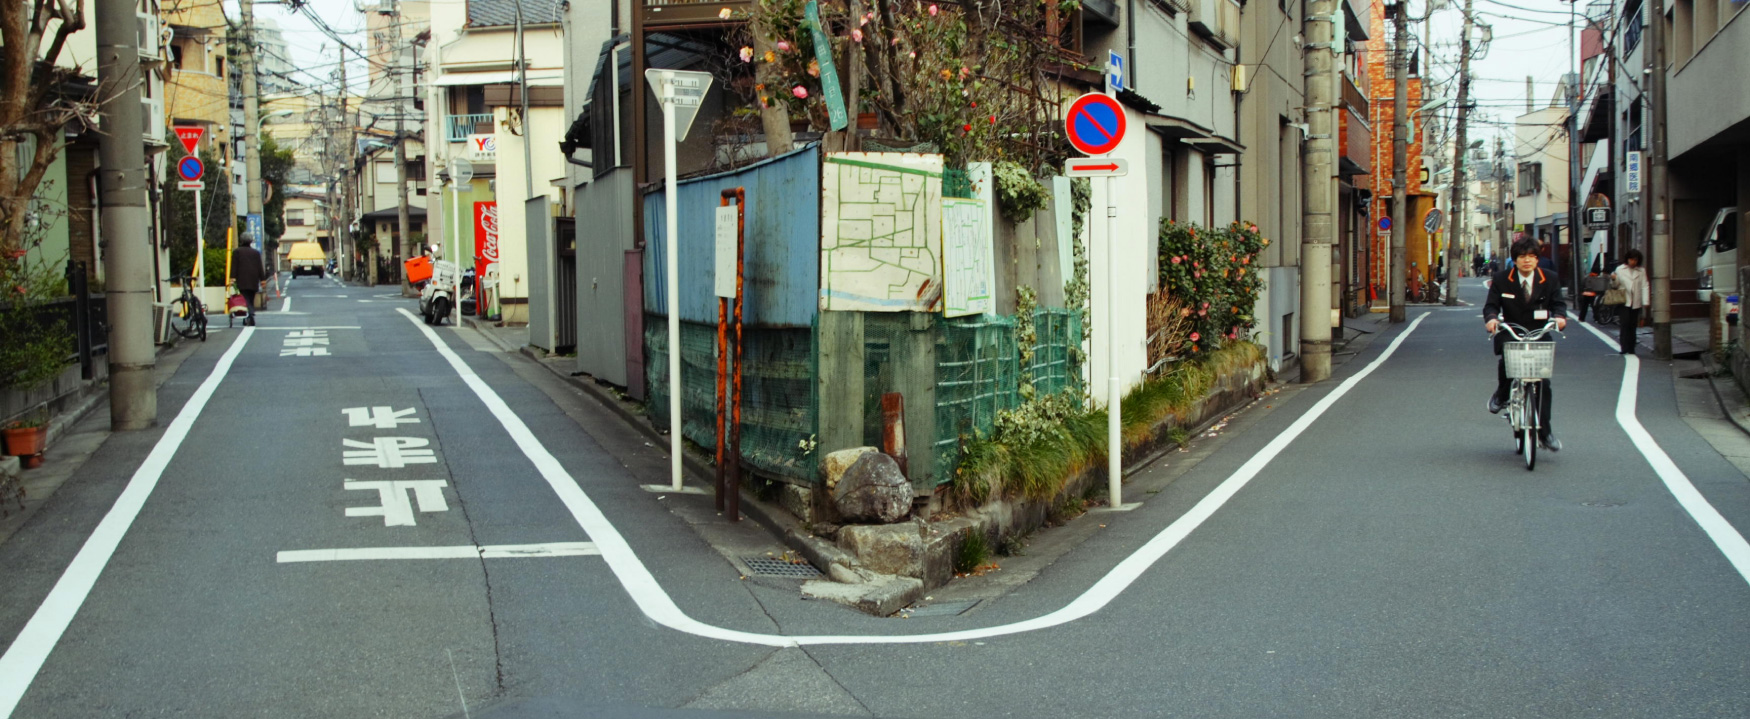 A photograph shows a street that branches into 2 paths; one going left, and one going right.